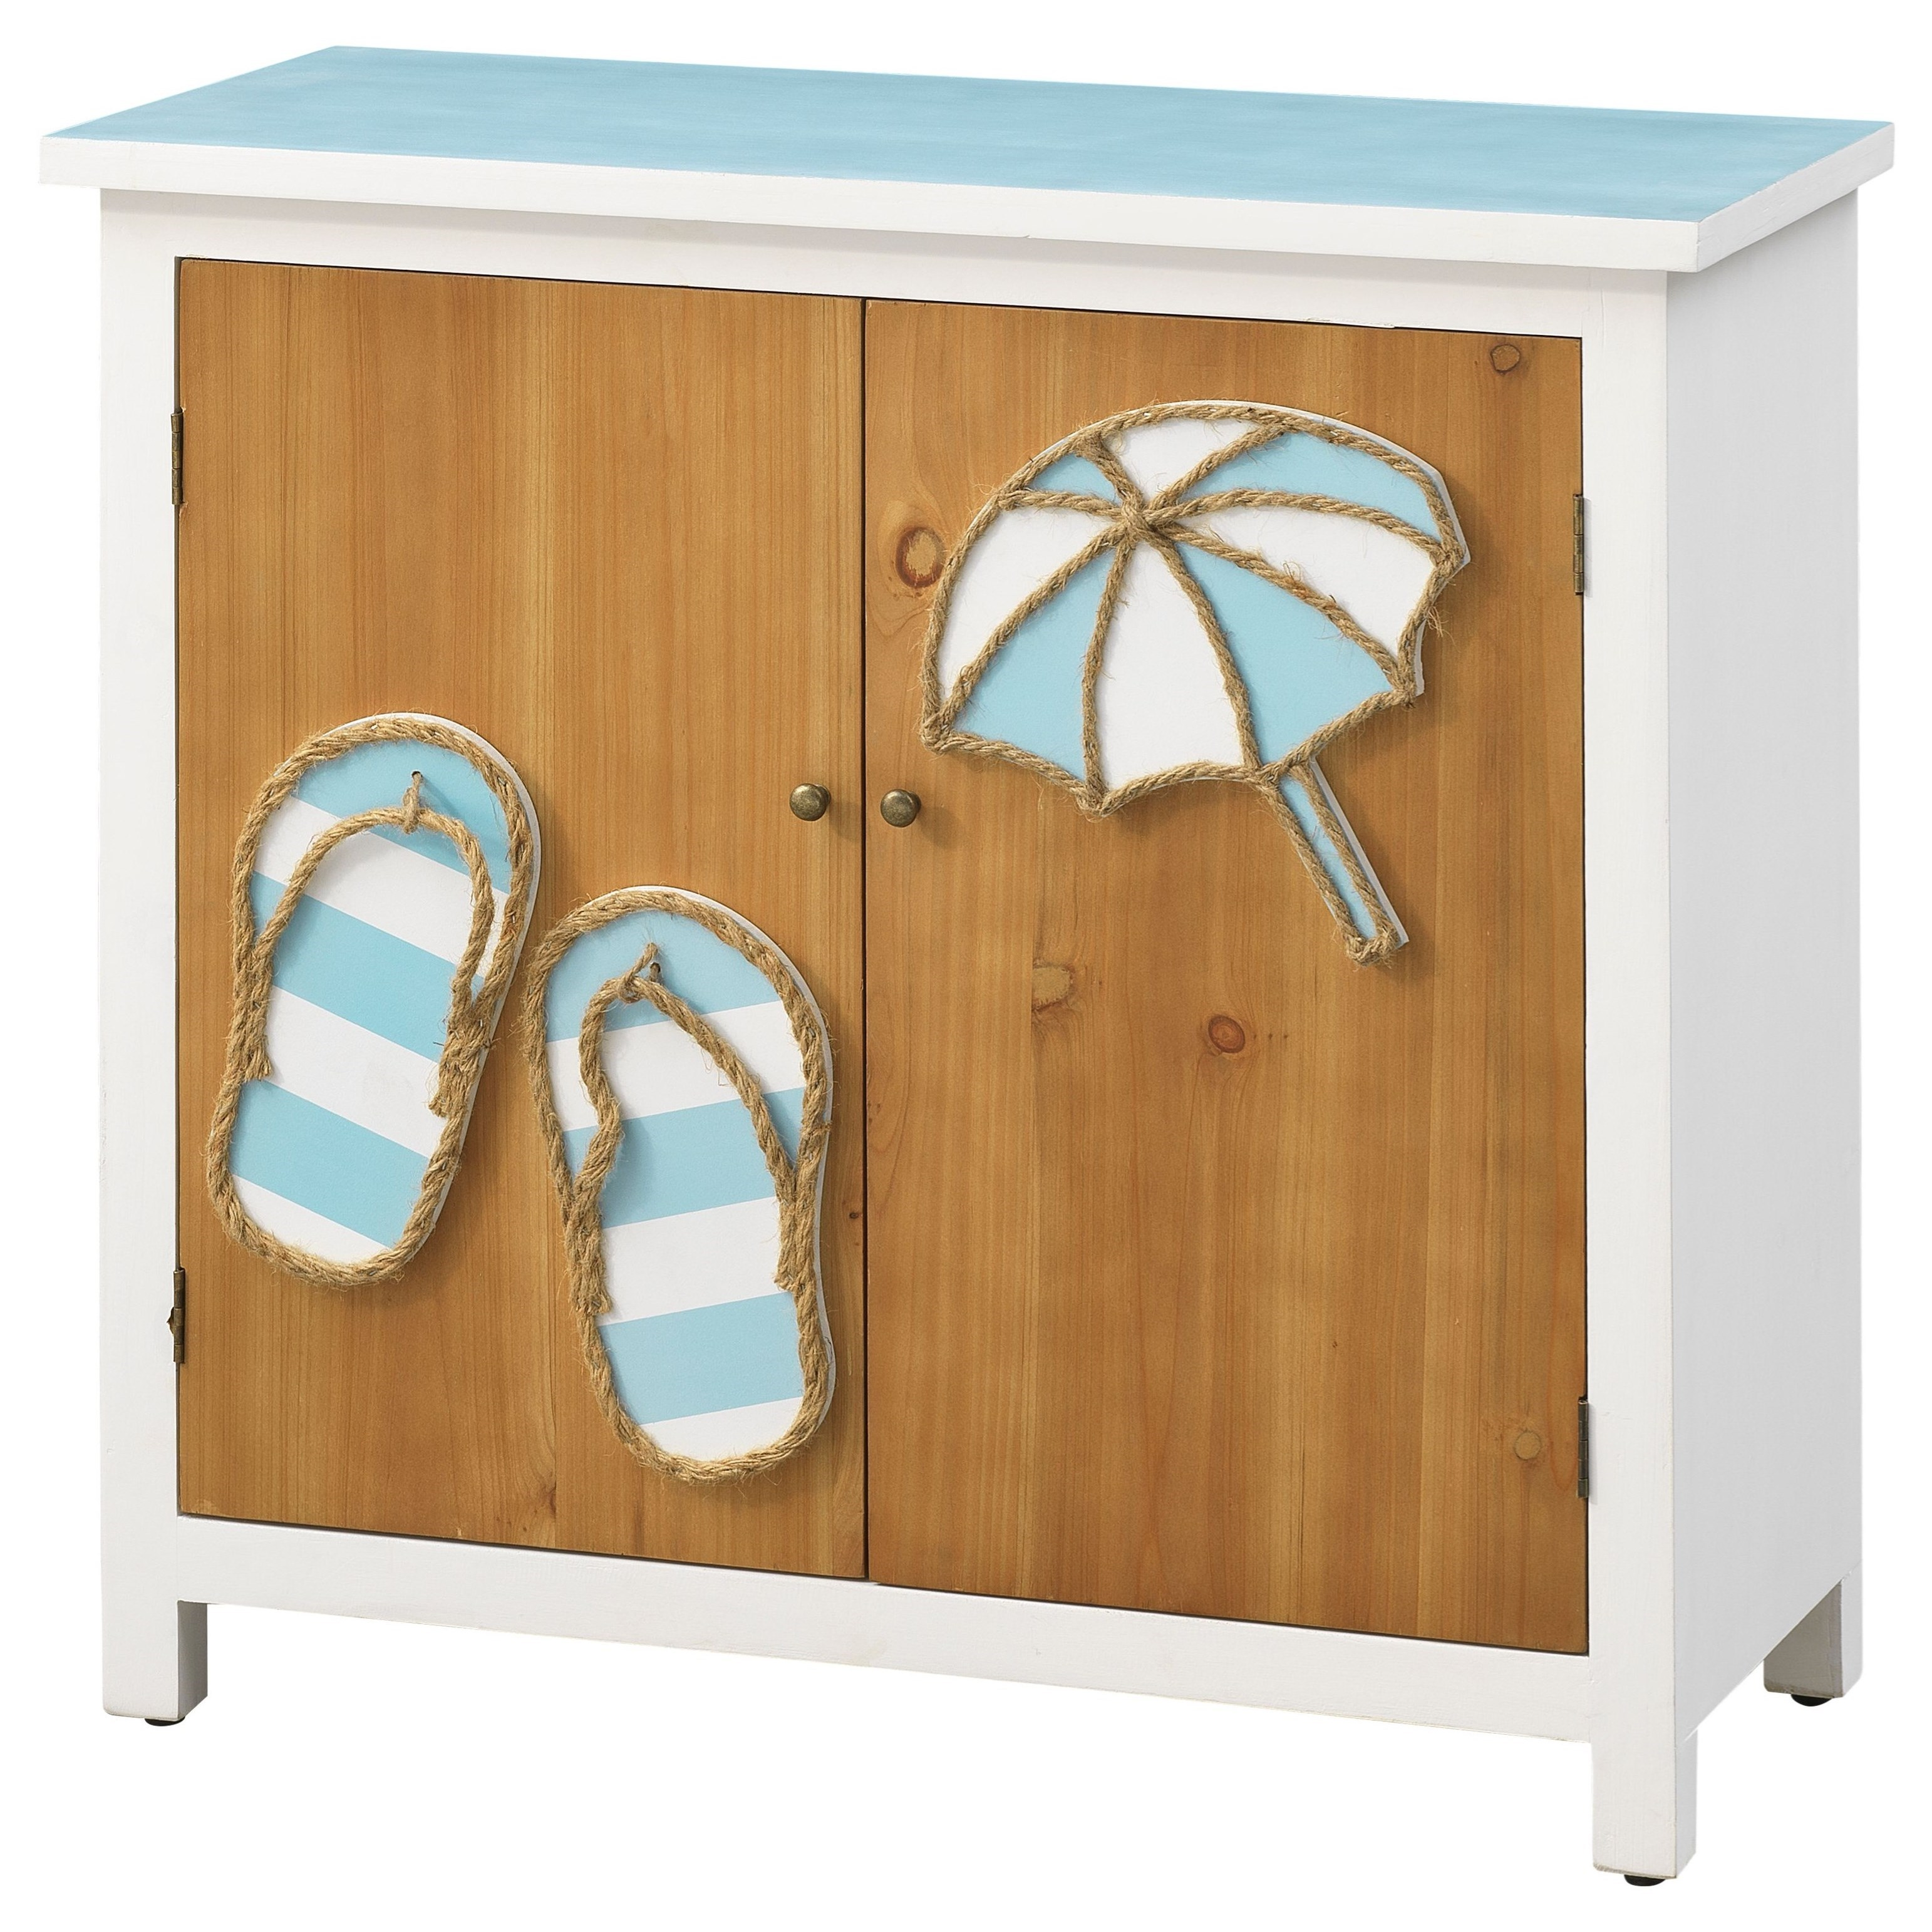 Pieces in Paradise 2-Door Cabinet by Coast to Coast Imports at Baer's Furniture